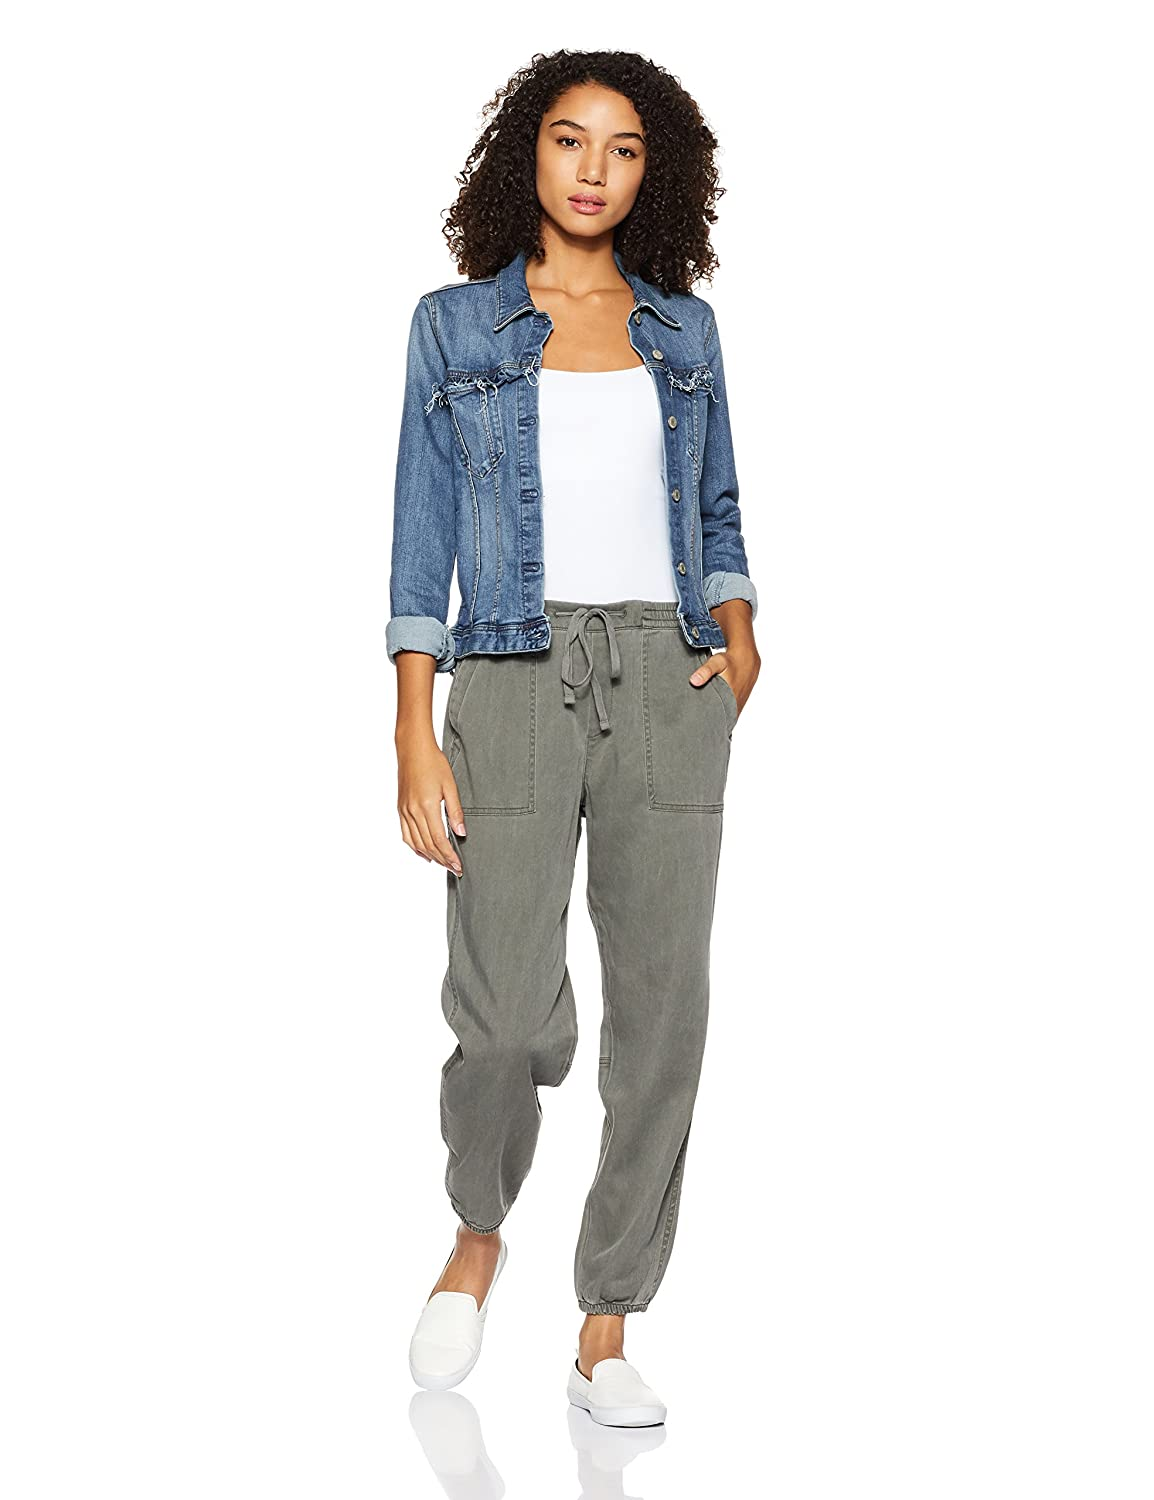 GAP track pants for women